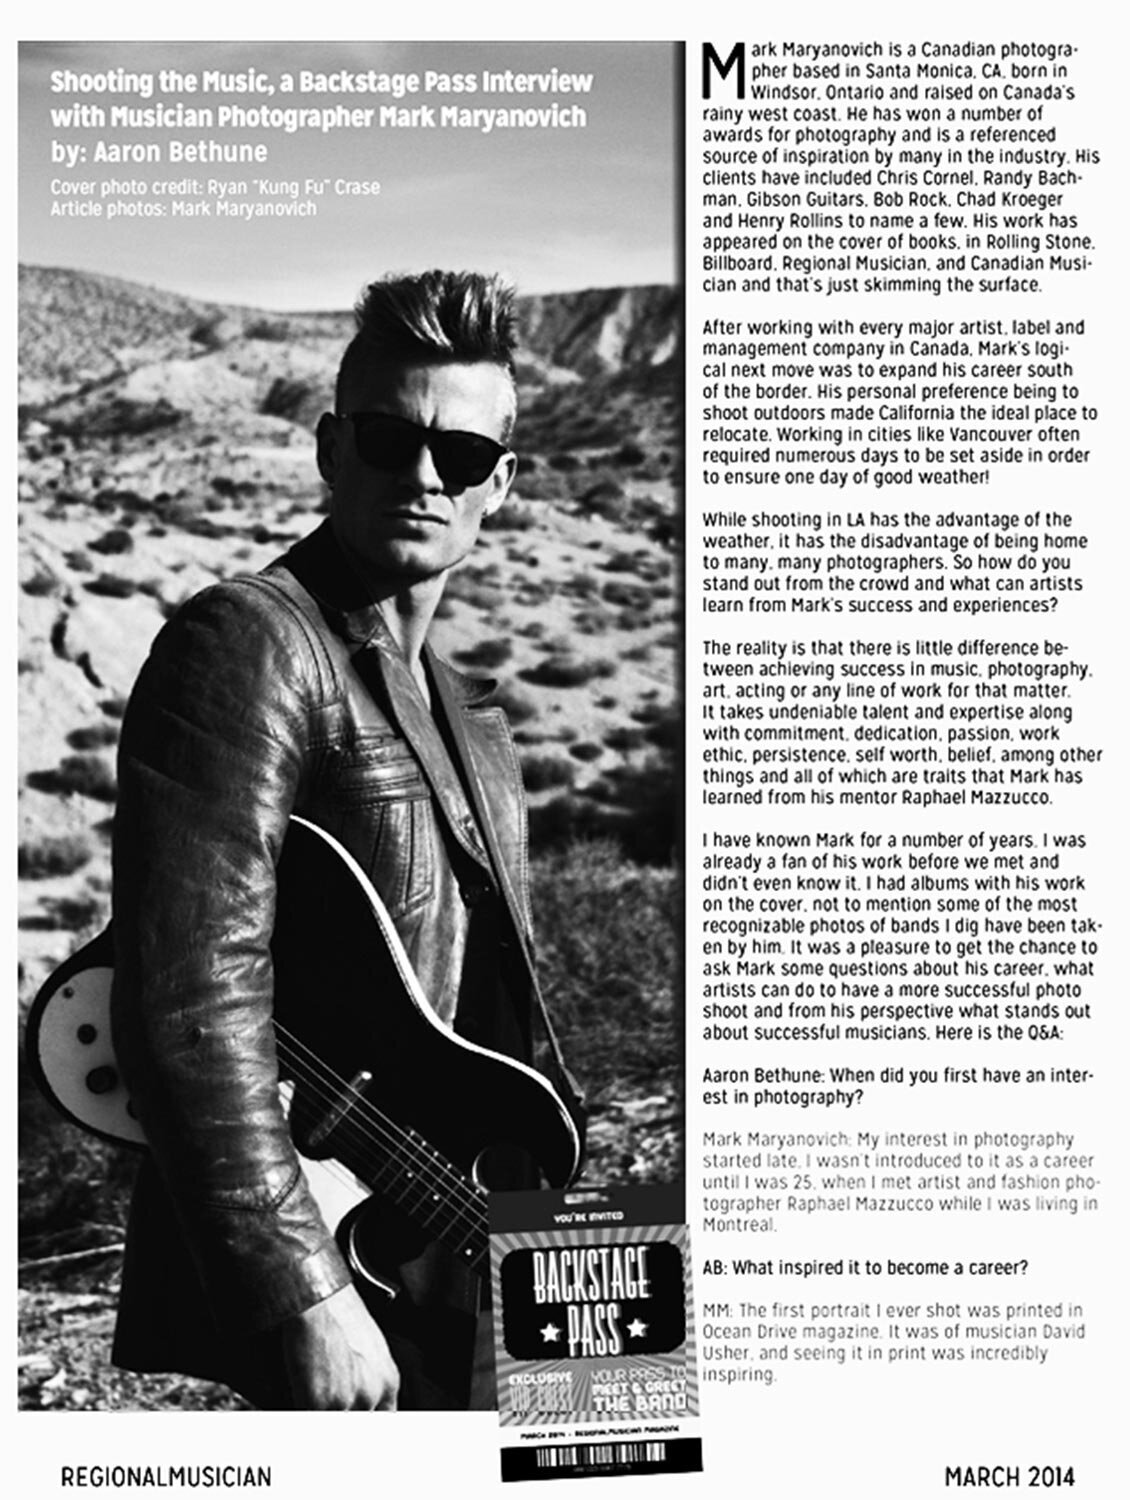 Magazine Interview featuring Photographer Mark Maryanovich Publication Regional Musician Page 1 Ryan Guldemon black and white portrait holding guitar wearing sunglasses in desert magazine text around him